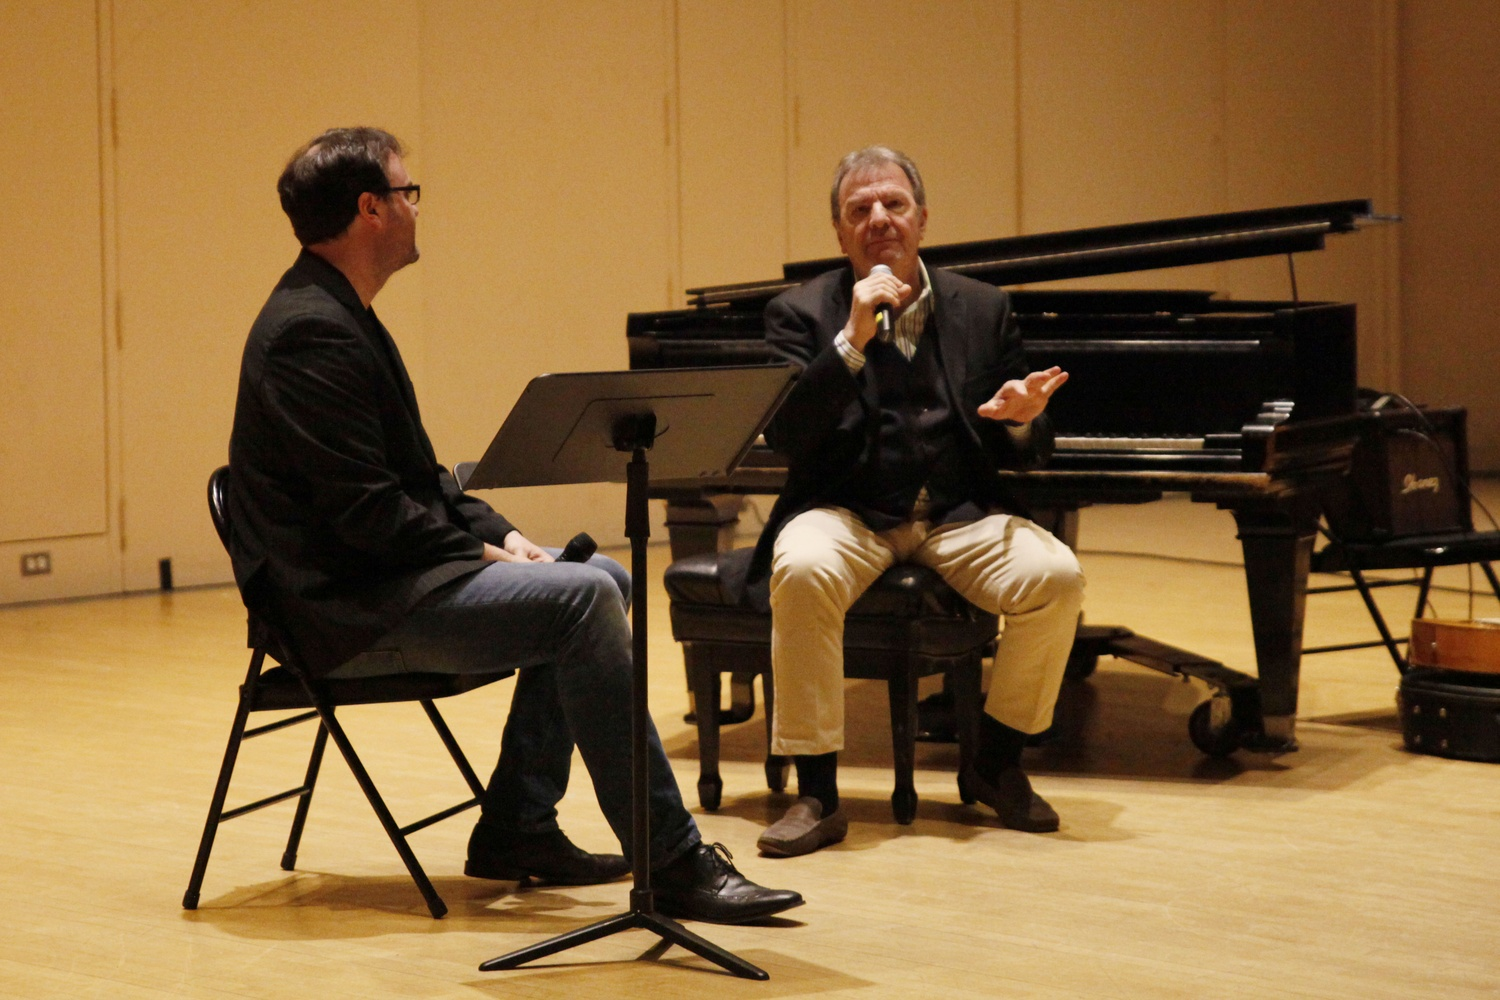 Professor Thomas Wisniewski (left) and Pablo Ziegler (right) talk during a special meeting of 149DA: Argentine Tango: Culture, Music, and the Dance on Thursday afternoon.  Ziegler, an Argentine pianist and composer, gave a lecture and led a master class.